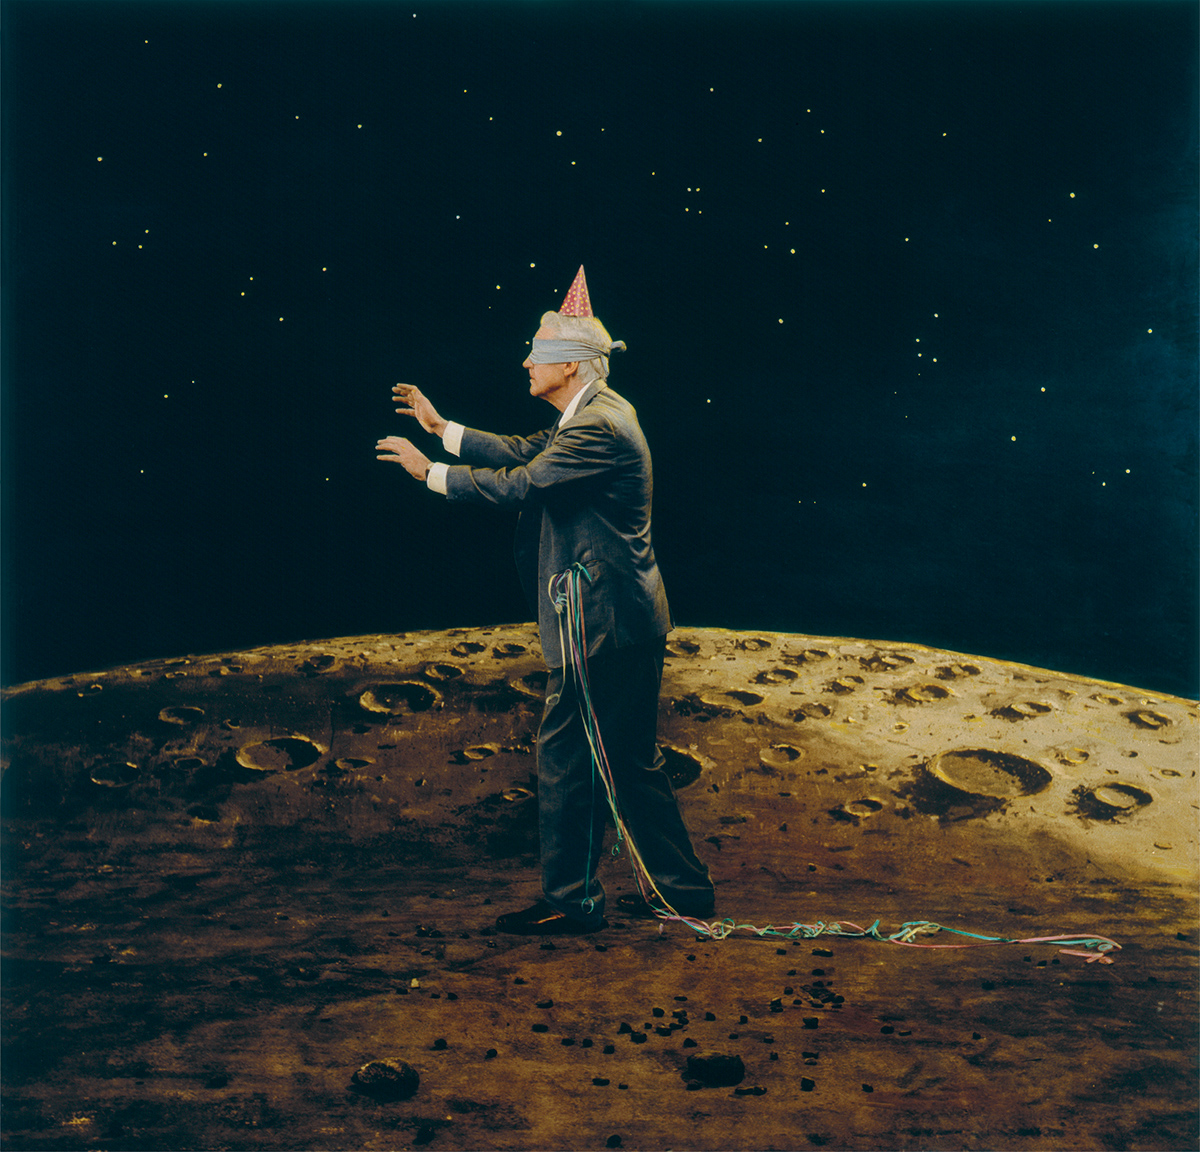 Untitled (on moon), by Teun Hocks, 2007.